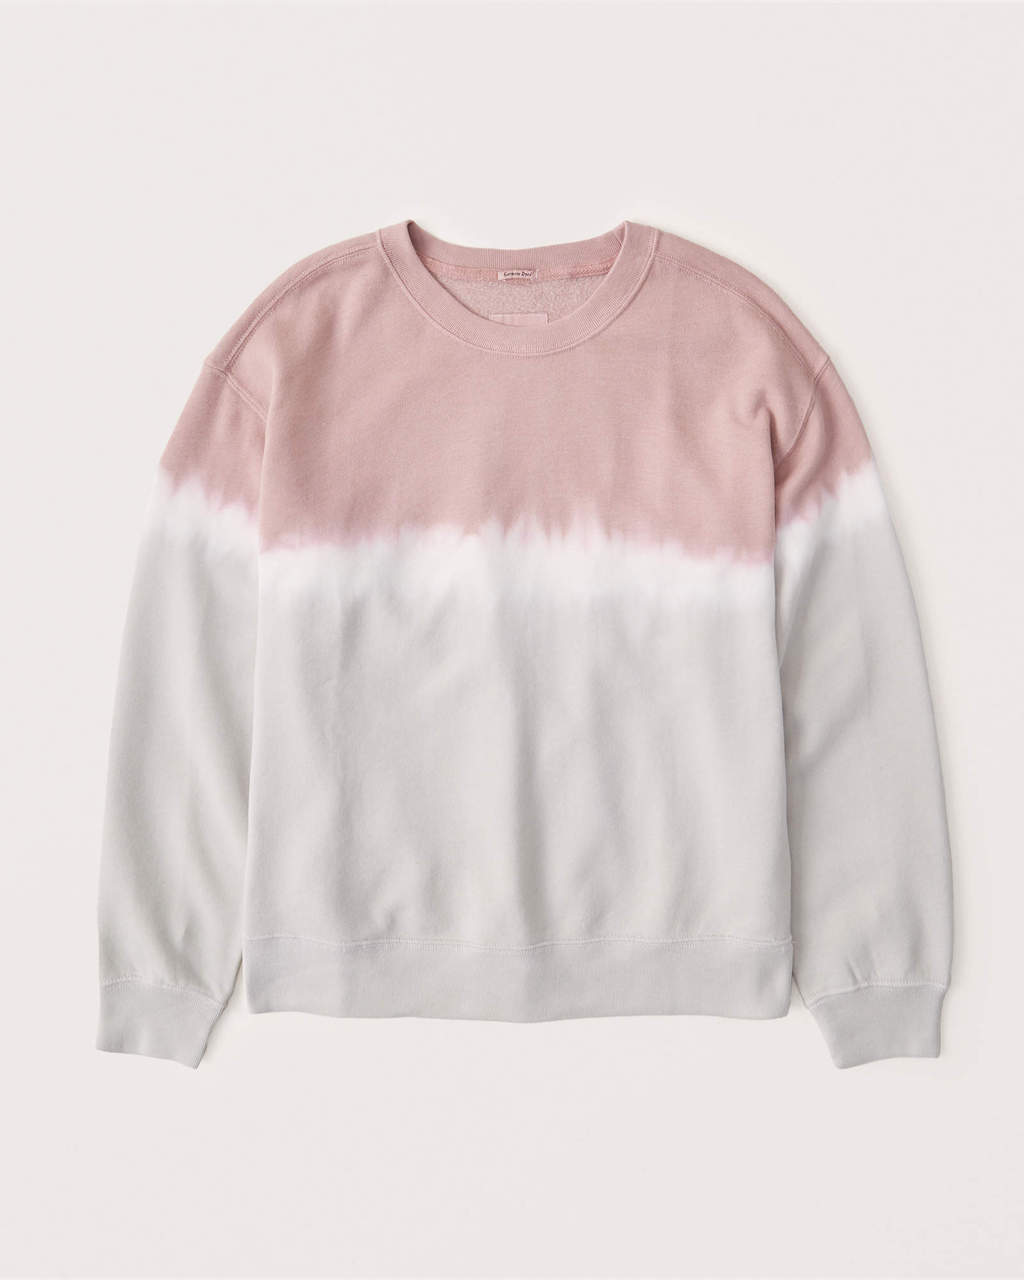 Abercrombie & Fitch Relaxed Crew Sweatshirt